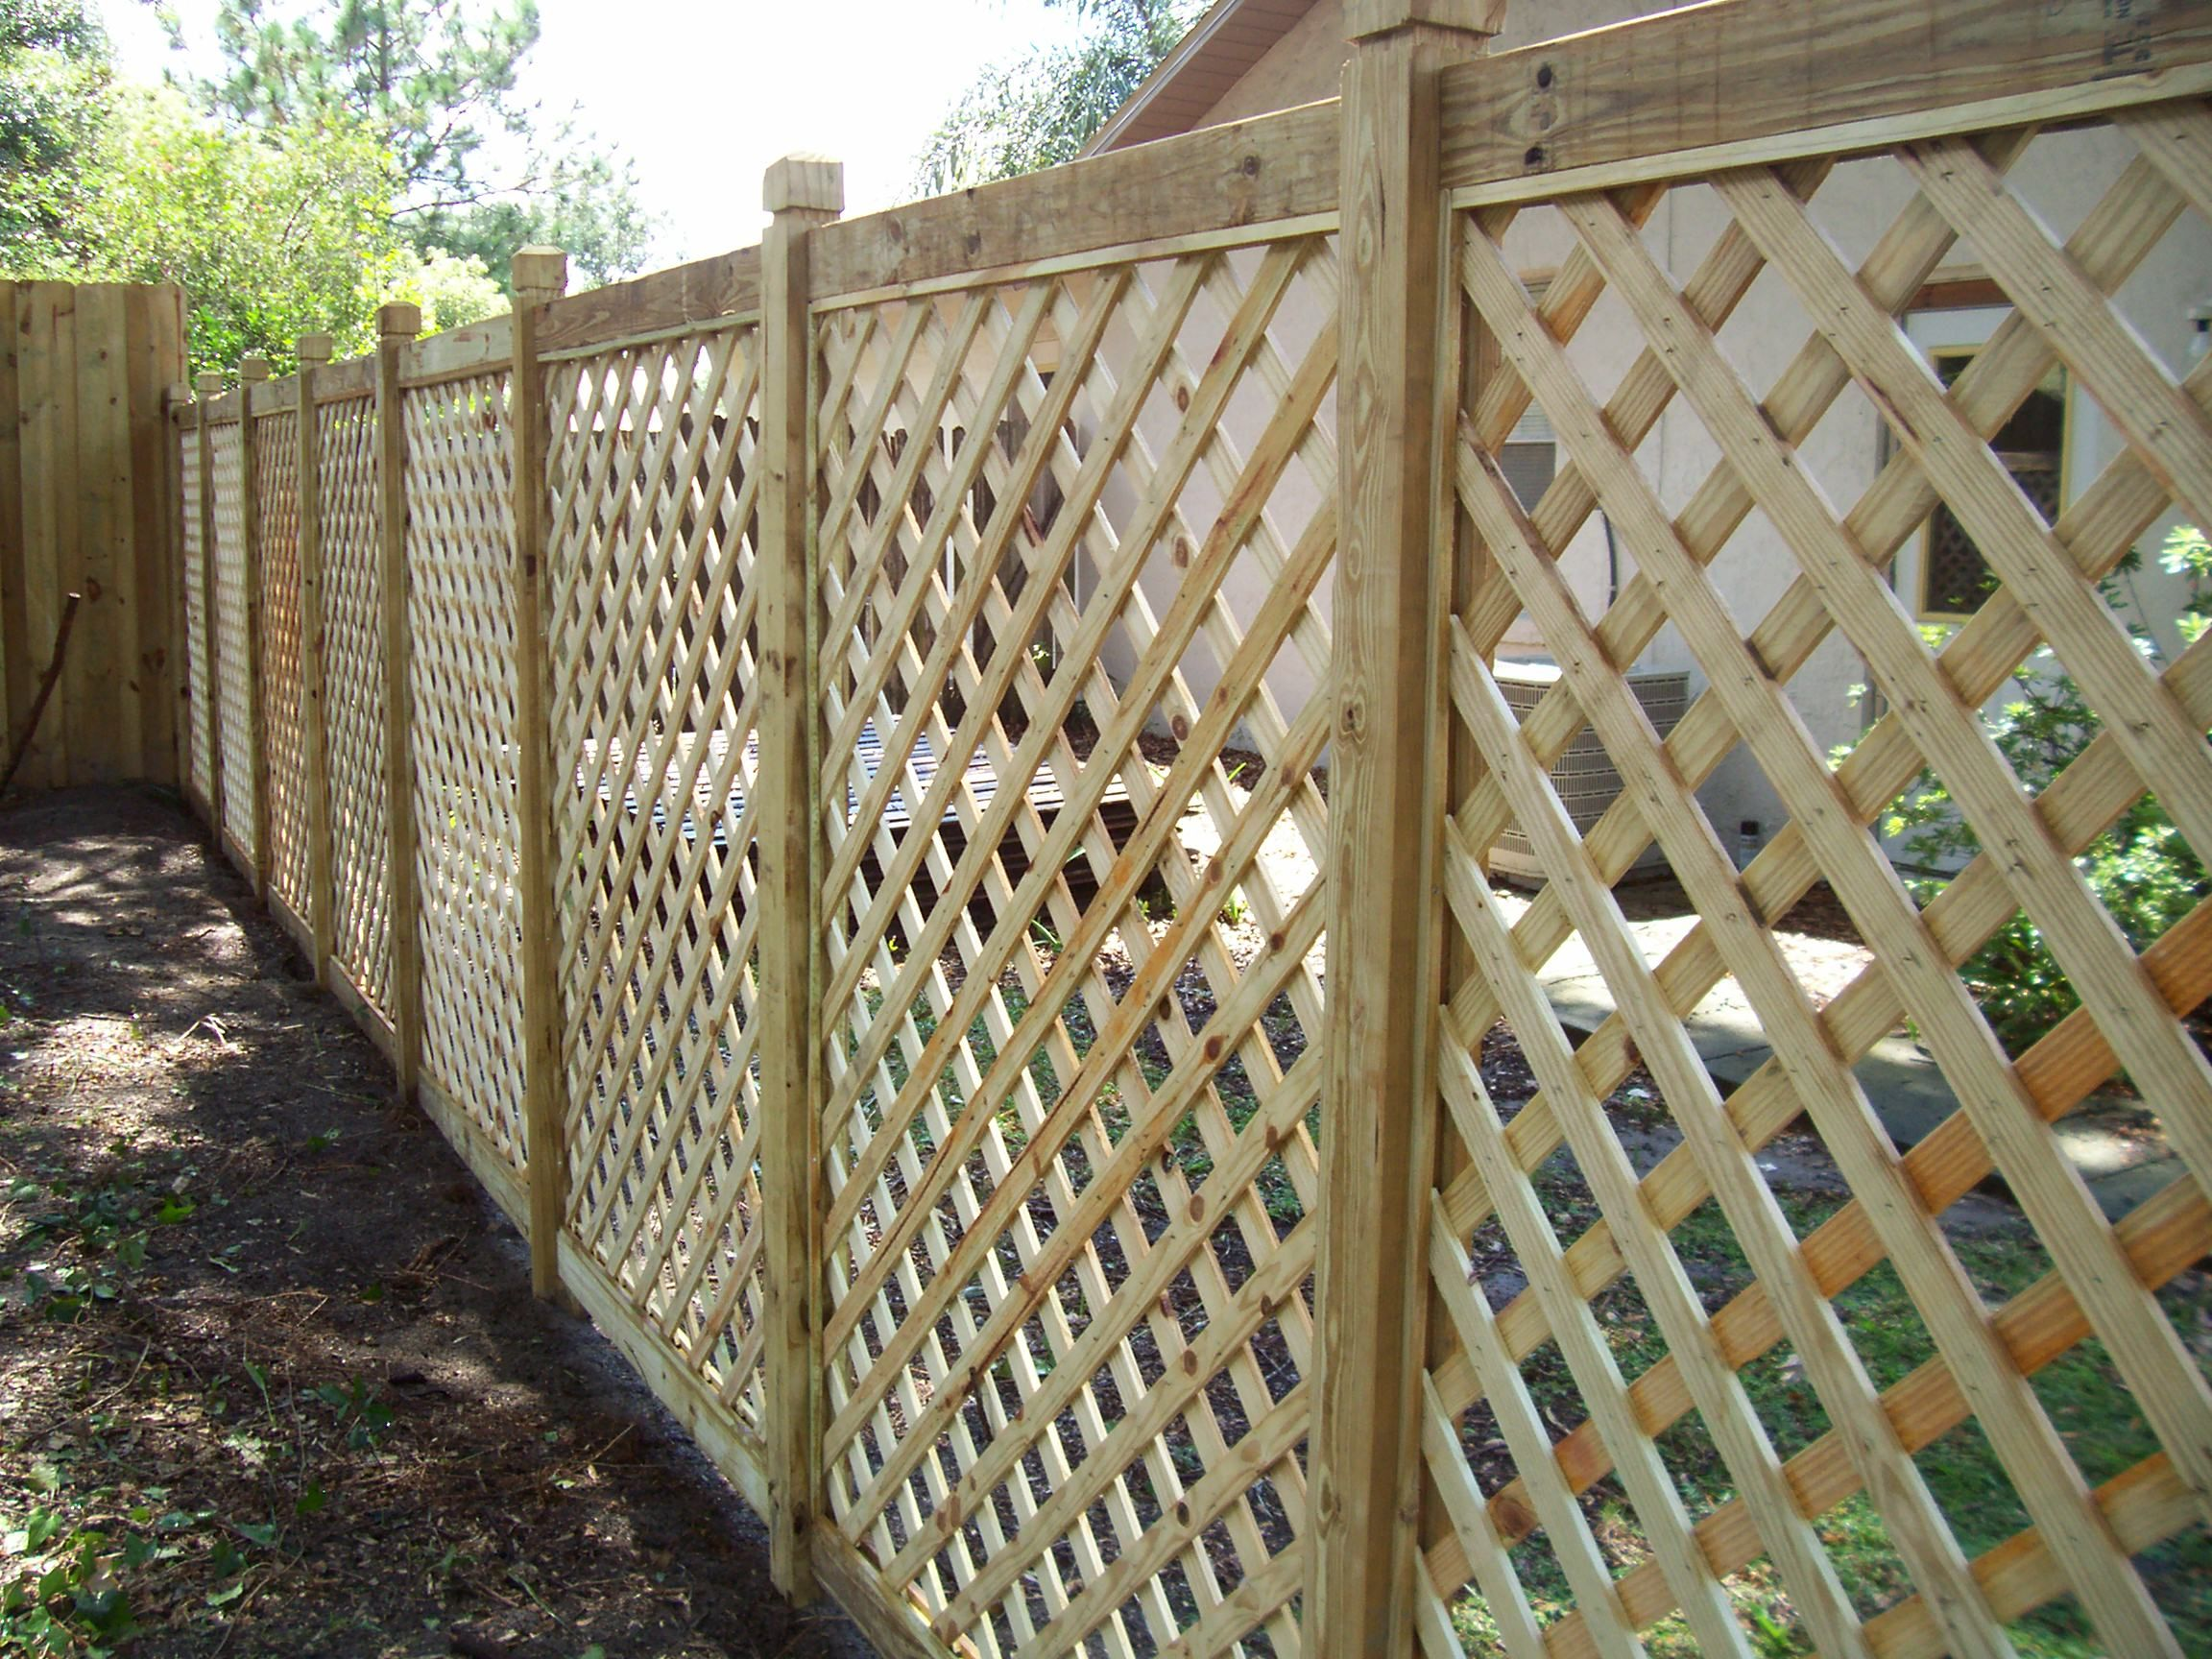 Lattice fence 6ft wood lattice picture frame fence gardens lattice fence 6ft wood lattice picture frame fence baanklon Gallery